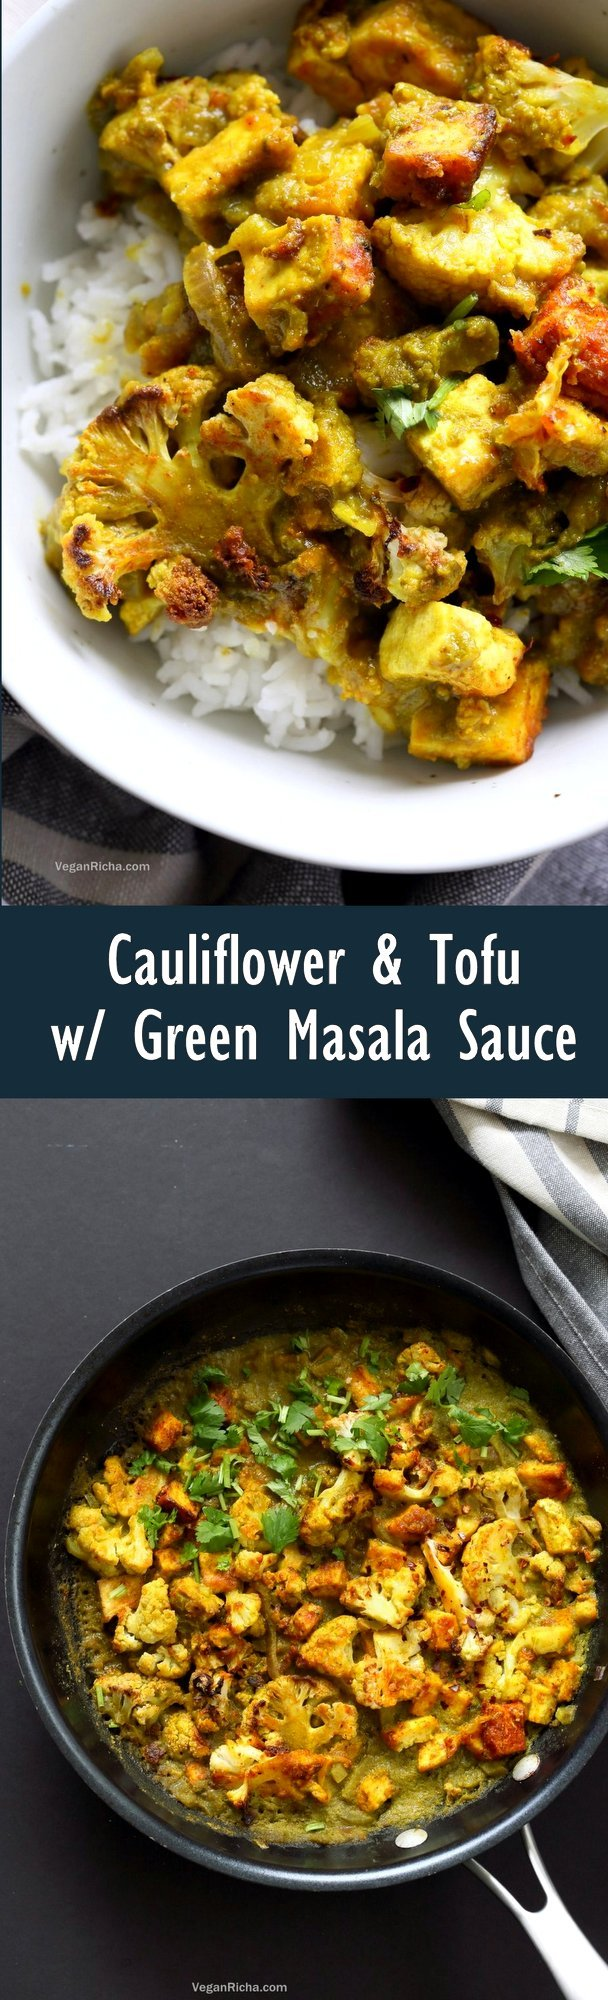 Spiced Cauliflower and Tofu in Green Masala Sauce. Baked Cauliflower and Tofu in green cilantro sauce. The sauce paste can be made ahead and stored. Vegan Gluten-free Nut-free Recipe. Can be soy-free with chickpea tofu or chickpeas or beans or other veggies. | VeganRicha.com